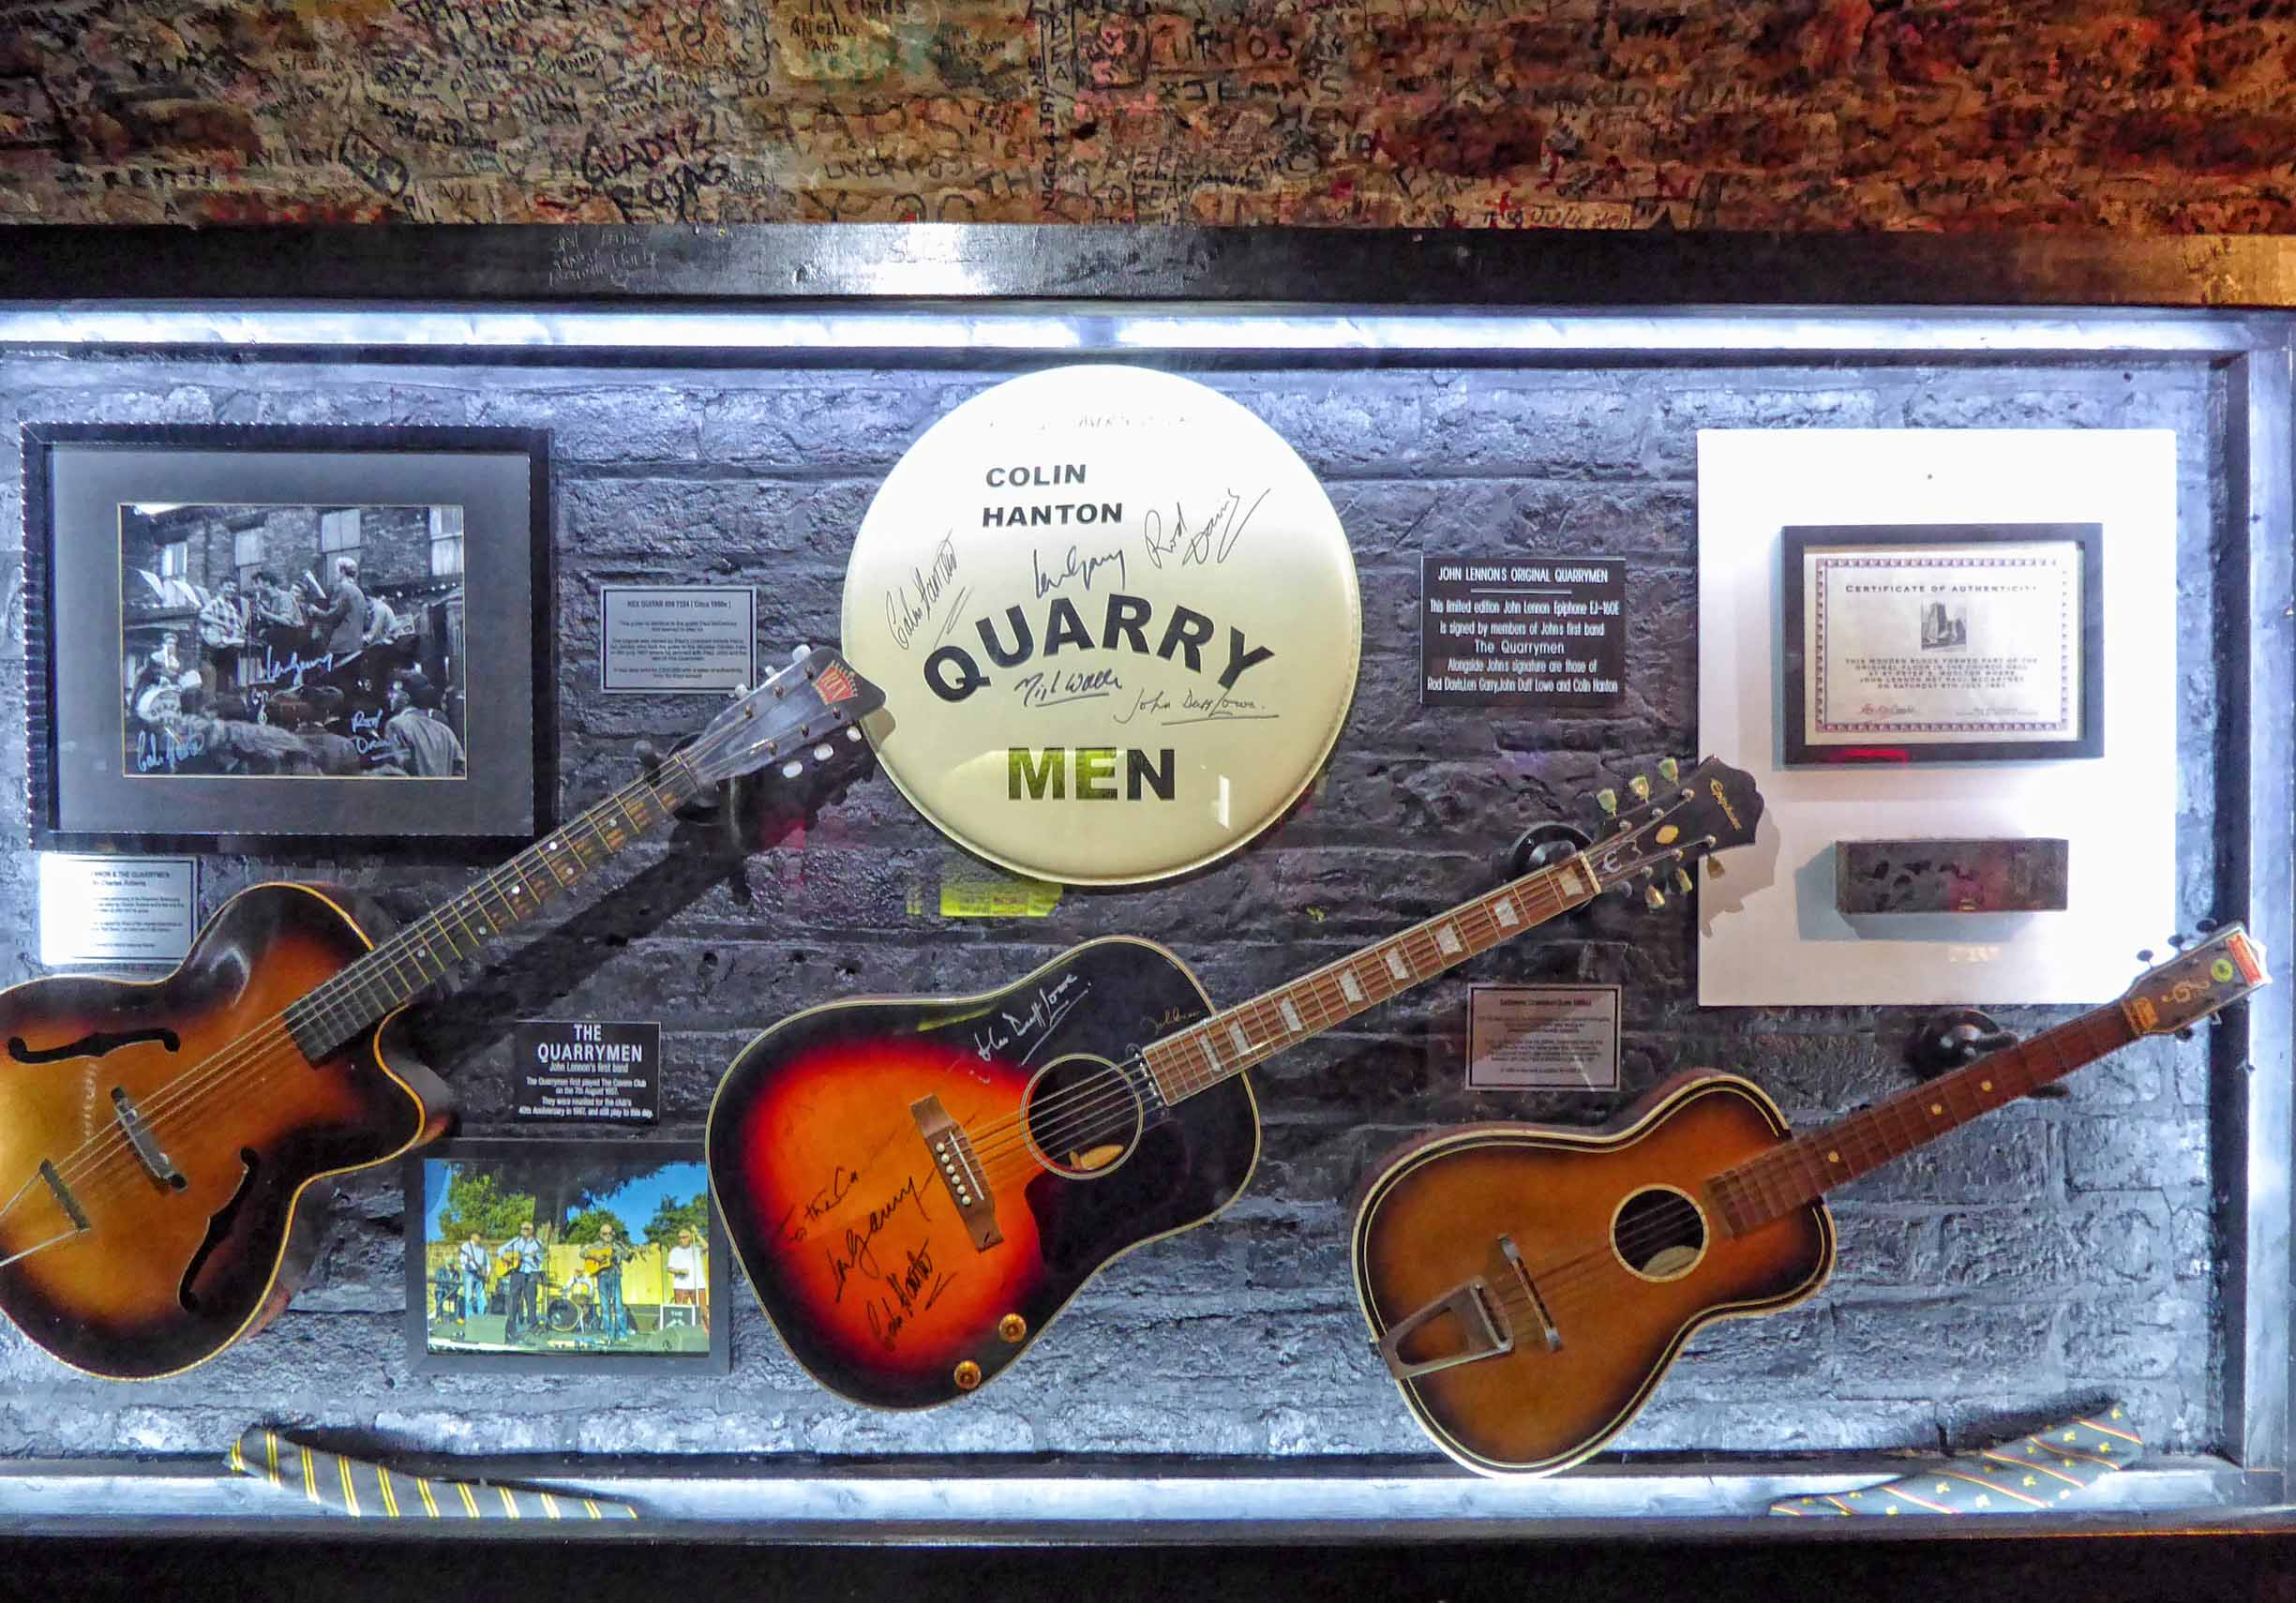 Display case with guitars and old photos